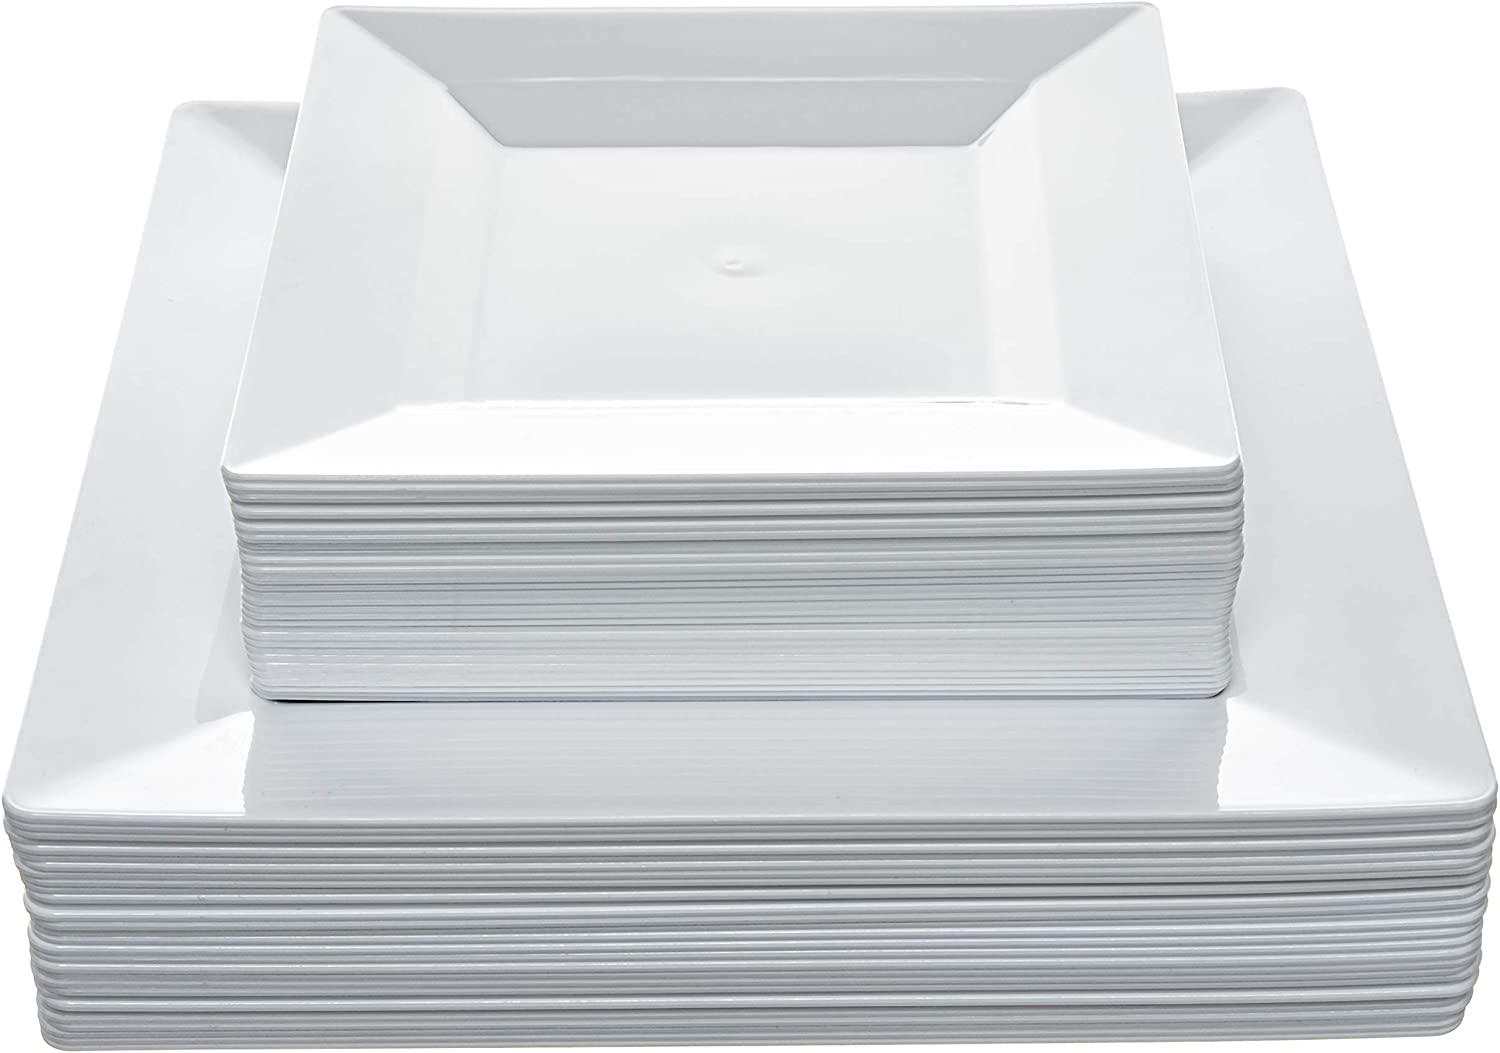 "Disposable Square Plastic Plates - 60 Pack - 30 x 9.5"" Dinner and 30 x 6.5"" Salad Combo - Premium Heavy Duty- By Aya's Cutlery Kingdom"